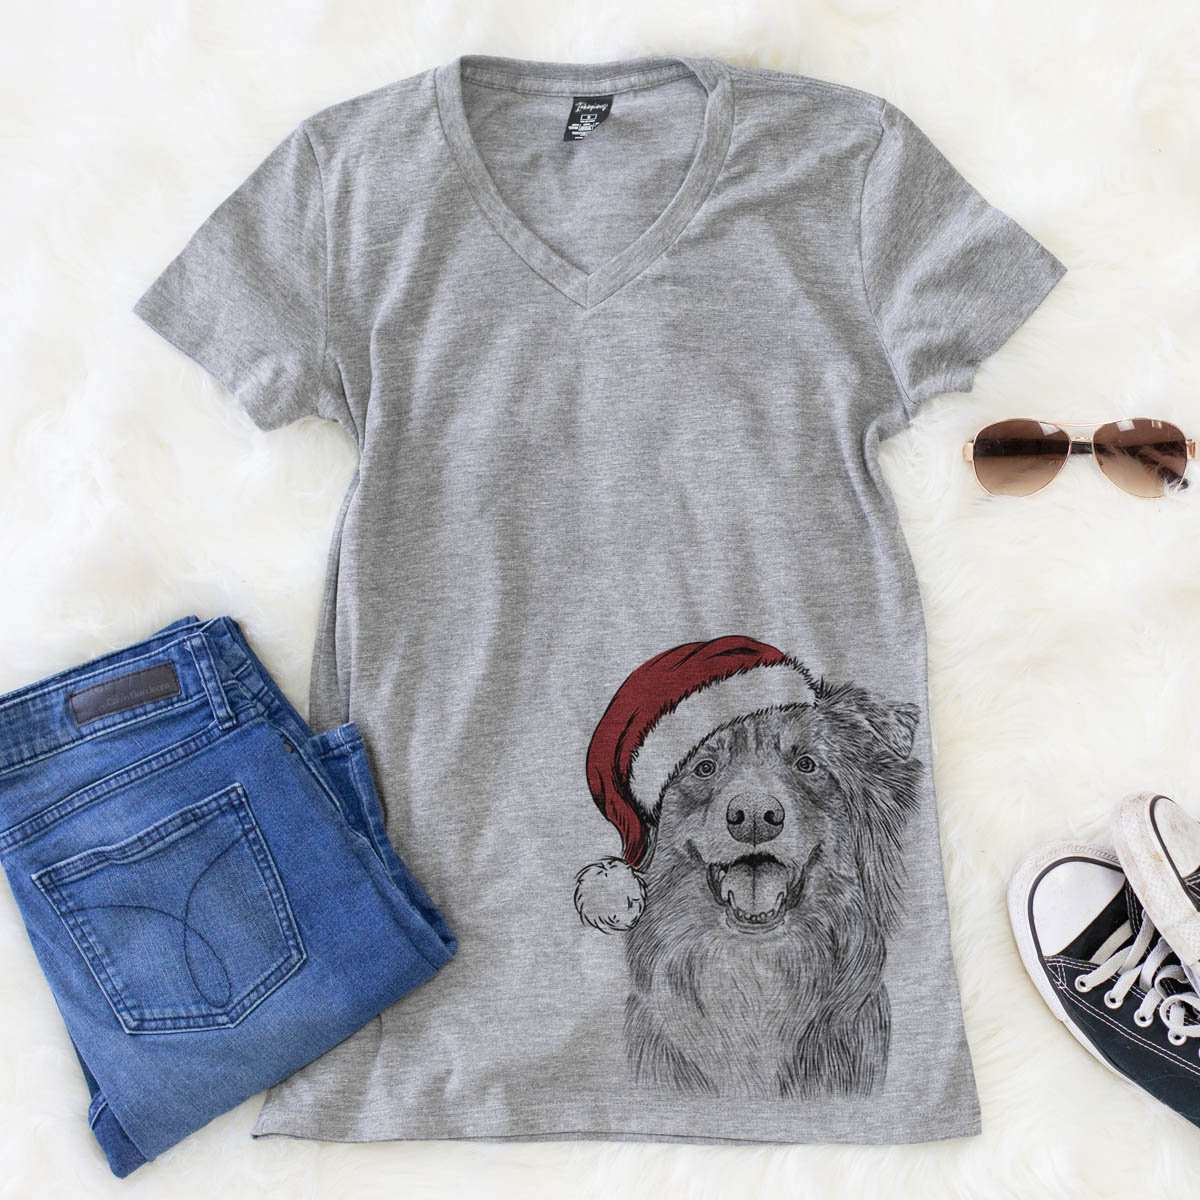 Aussie Parker the Australian Shepherd  - Christmas Collection